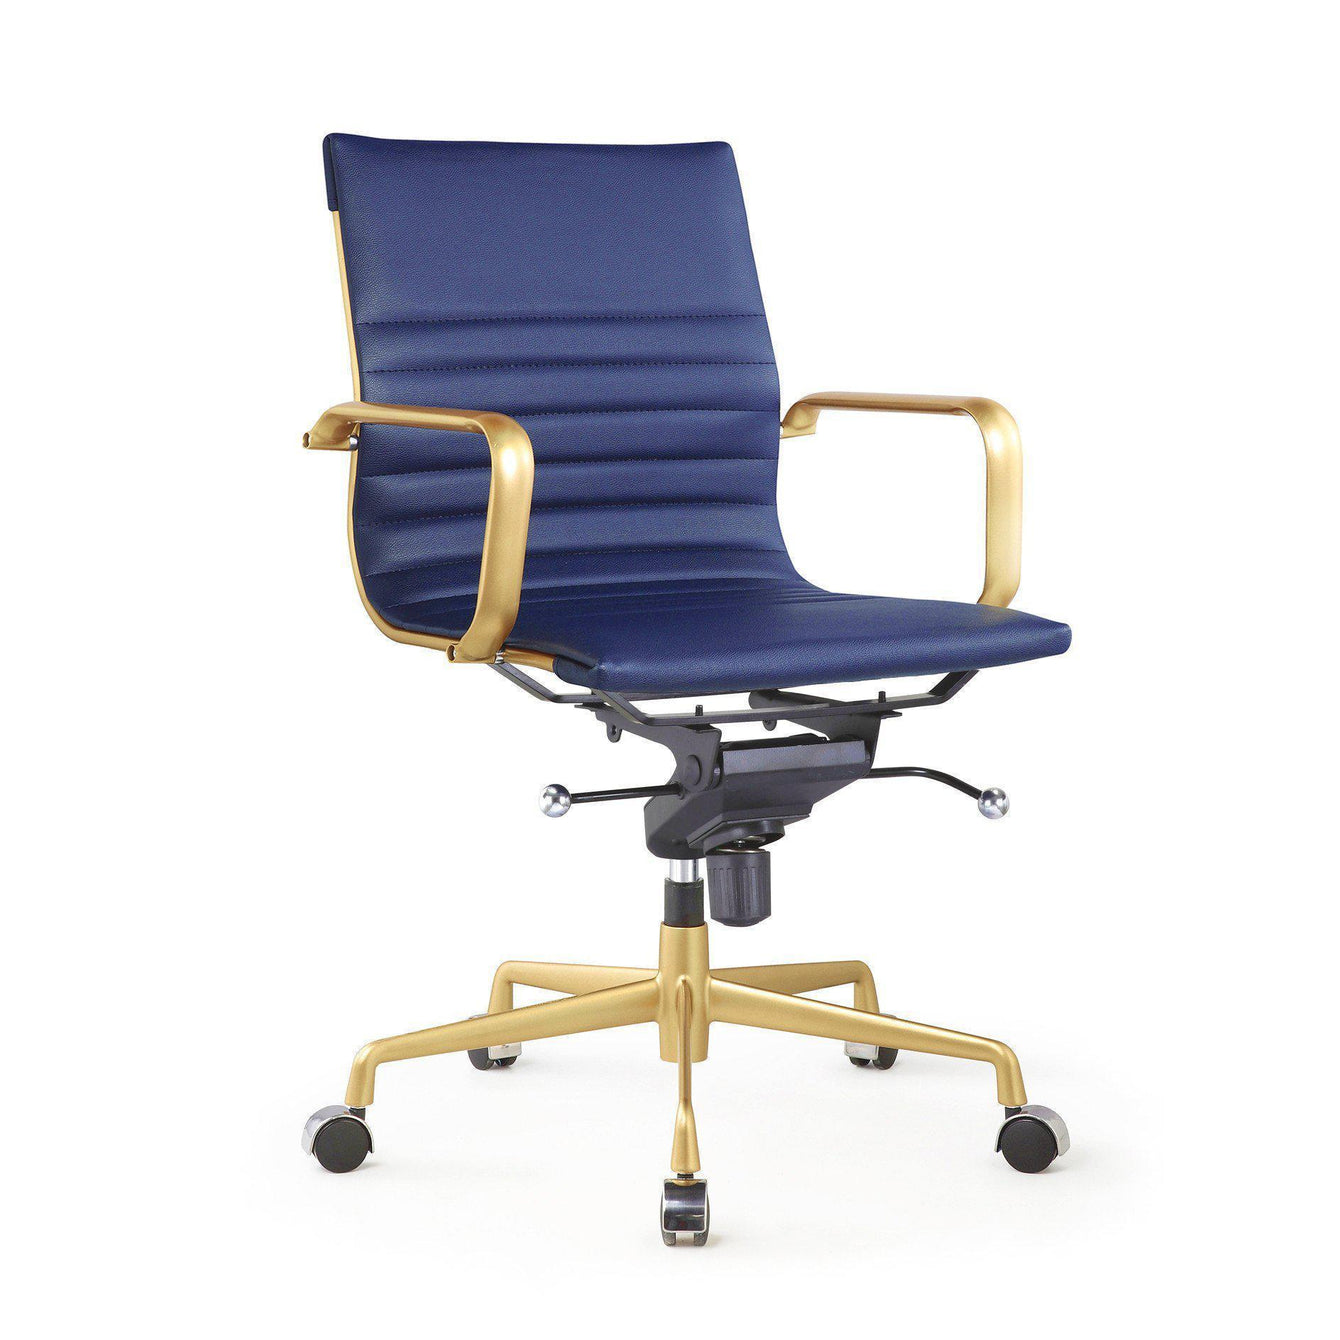 Decade Gold Modern Leather Office Chairs Set of 2-Home - Furniture - Office Chairs-DESIGN LAB MN-Navy Blue-Peccadilly